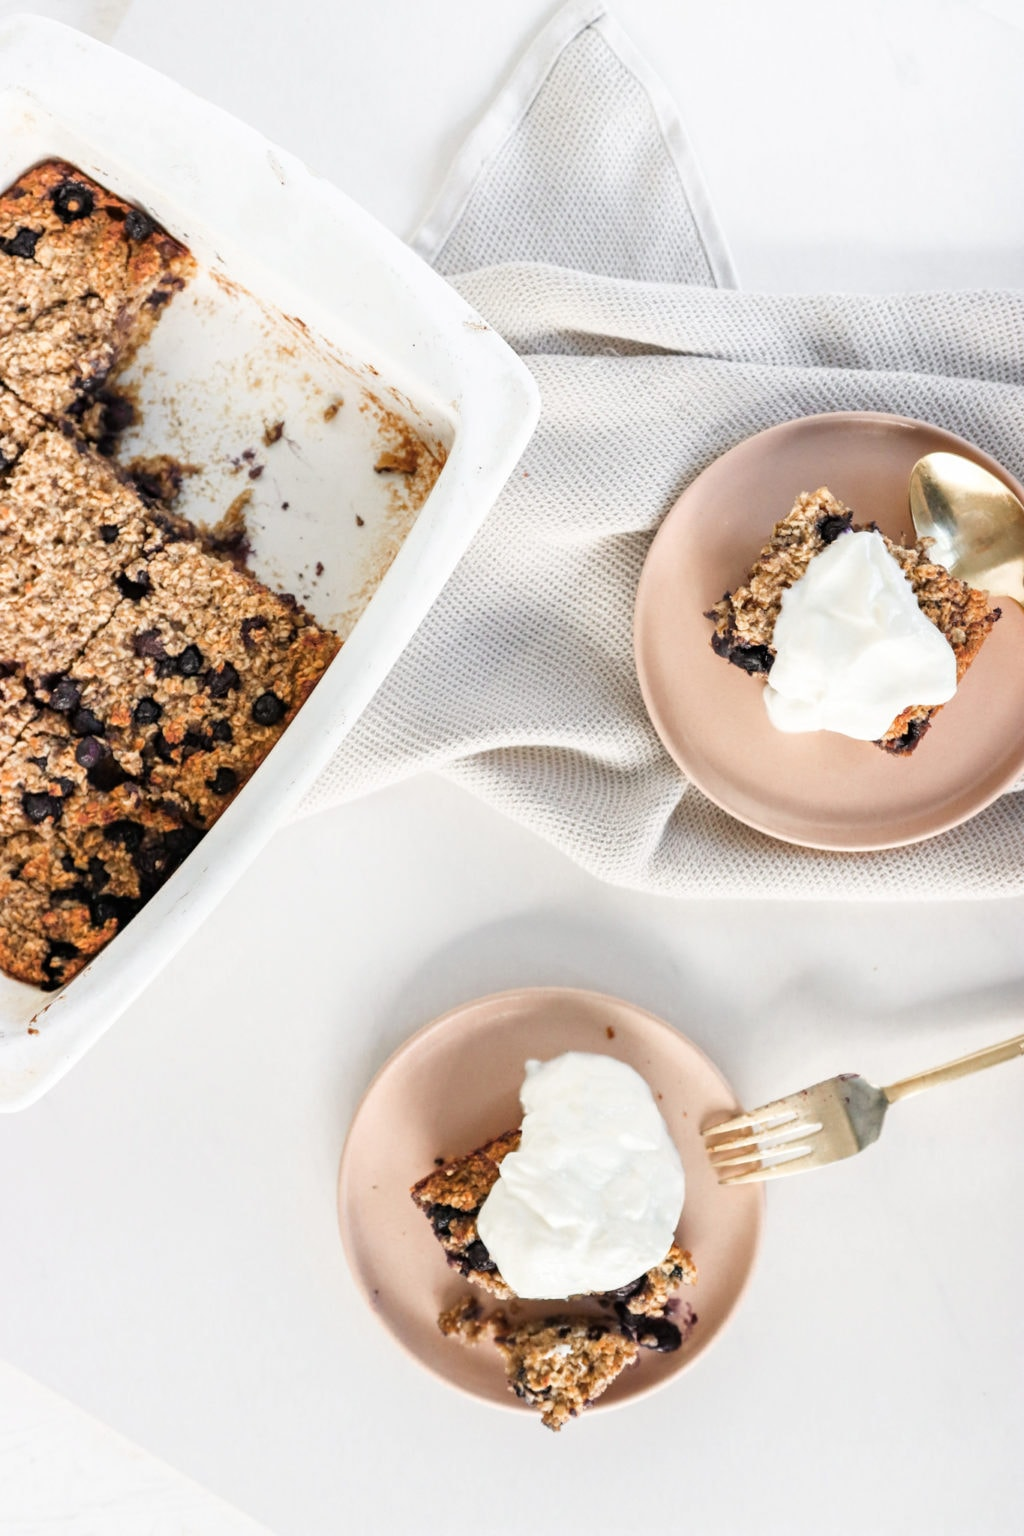 Blueberry baked oatmeal in a white dish cut up and served onto two pink plates topped with Greek Yogurt. Ingredients include: oats. blueberries, cinnamon